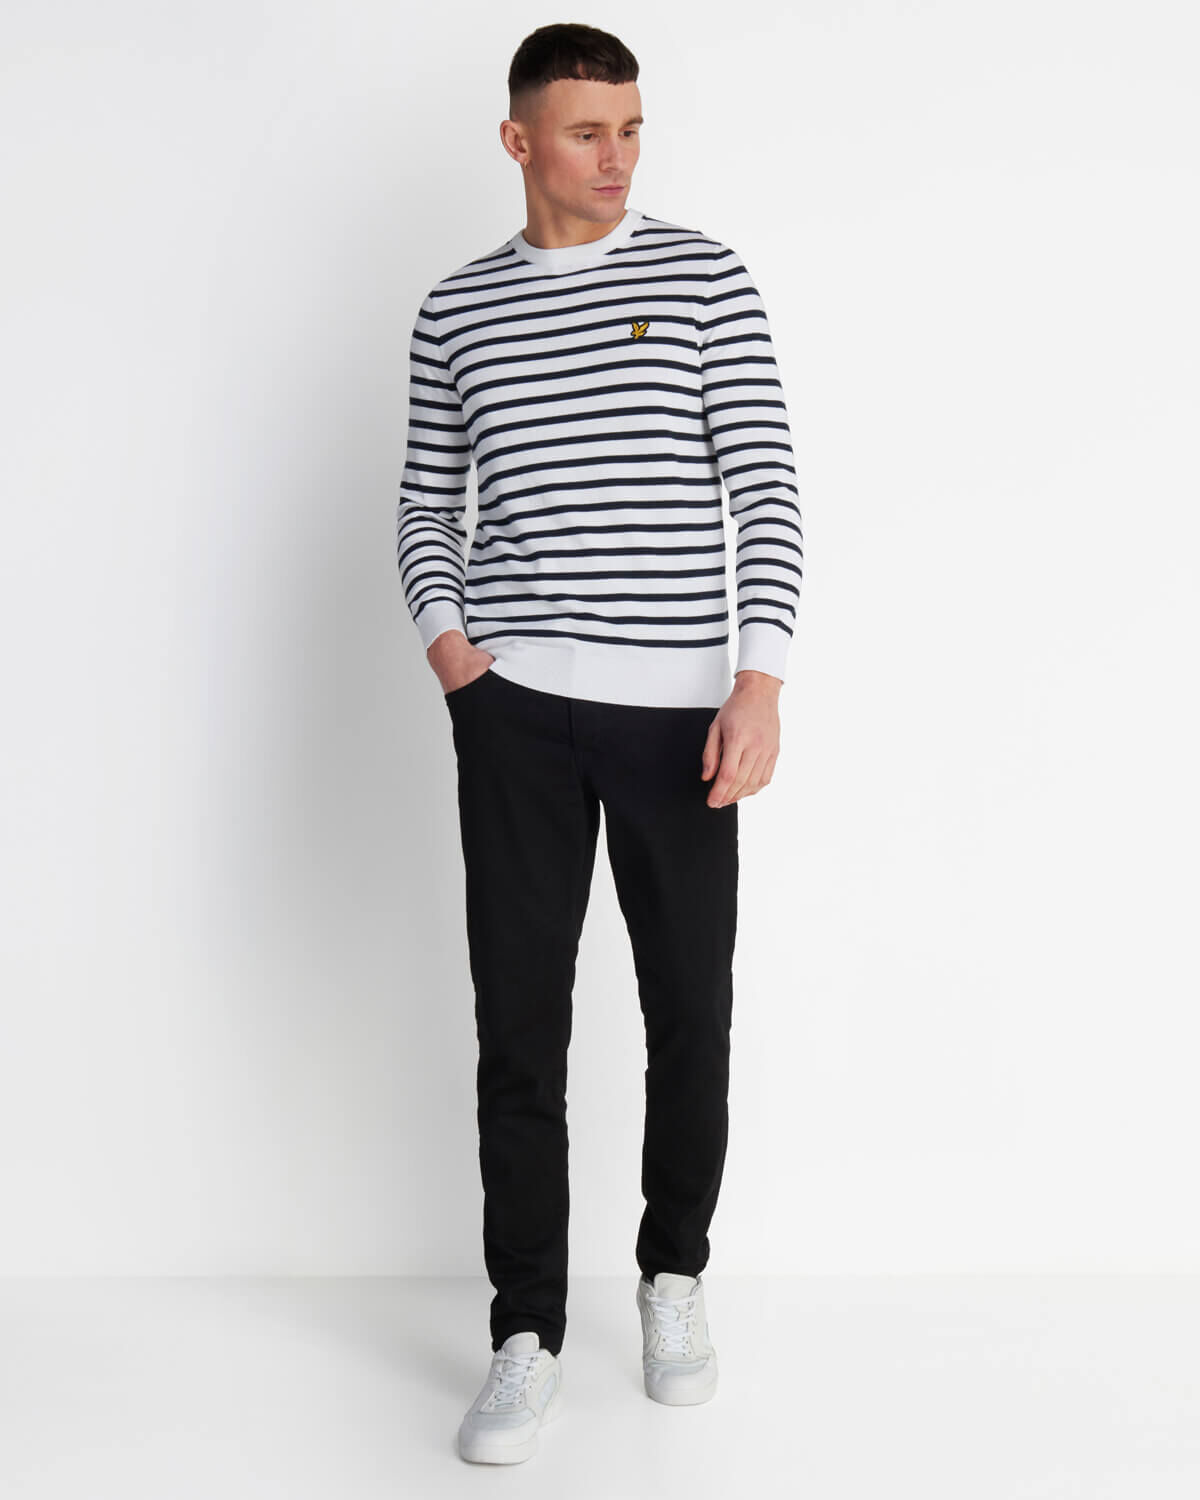 Lyle-and-Scott-Men-Breton-Stripe-Jumper-Cotton thumbnail 17